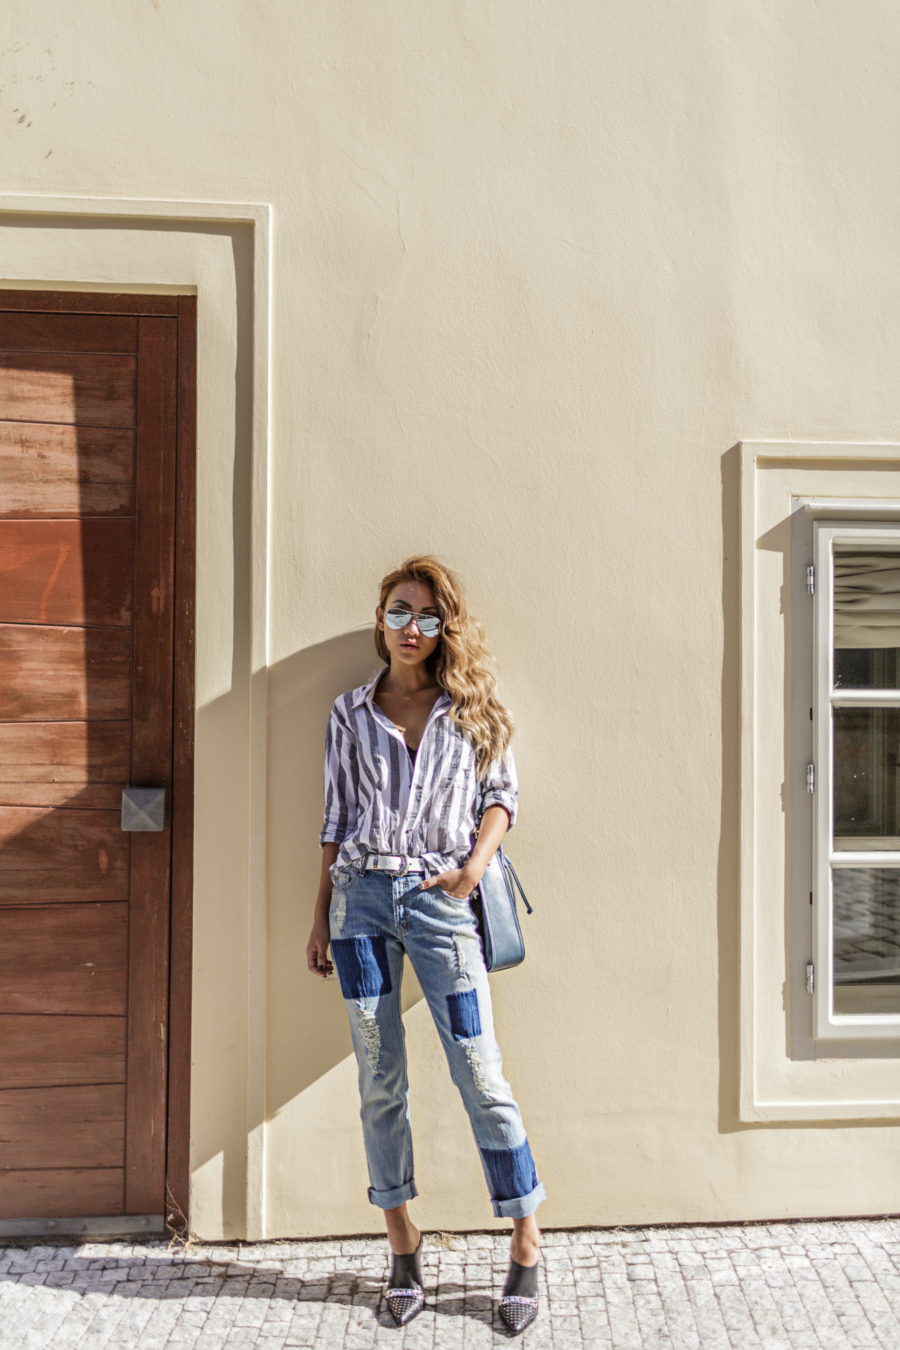 Stripe shirts and patch work denim - Off Duty Style Outfits Cool Girls Swear By // NotJessFashion.com